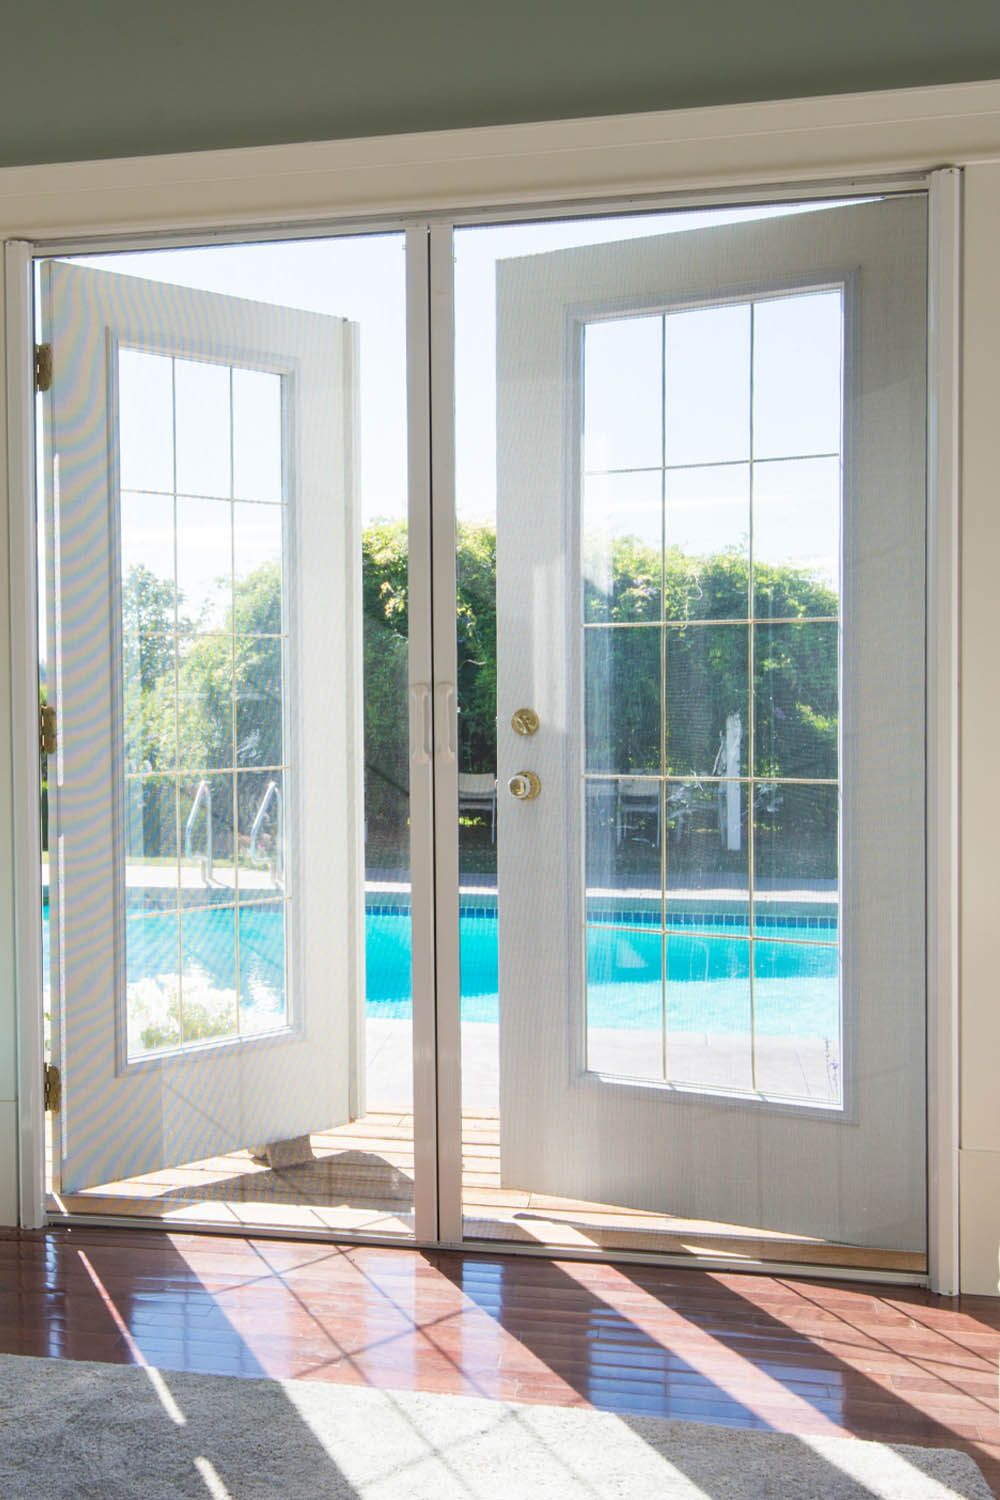 Phantom Screens Double French Doors Are Mounted To Each Side Of The Door Frame And Are Pulled To The Center Of The French Doors With Screens Double French Doors